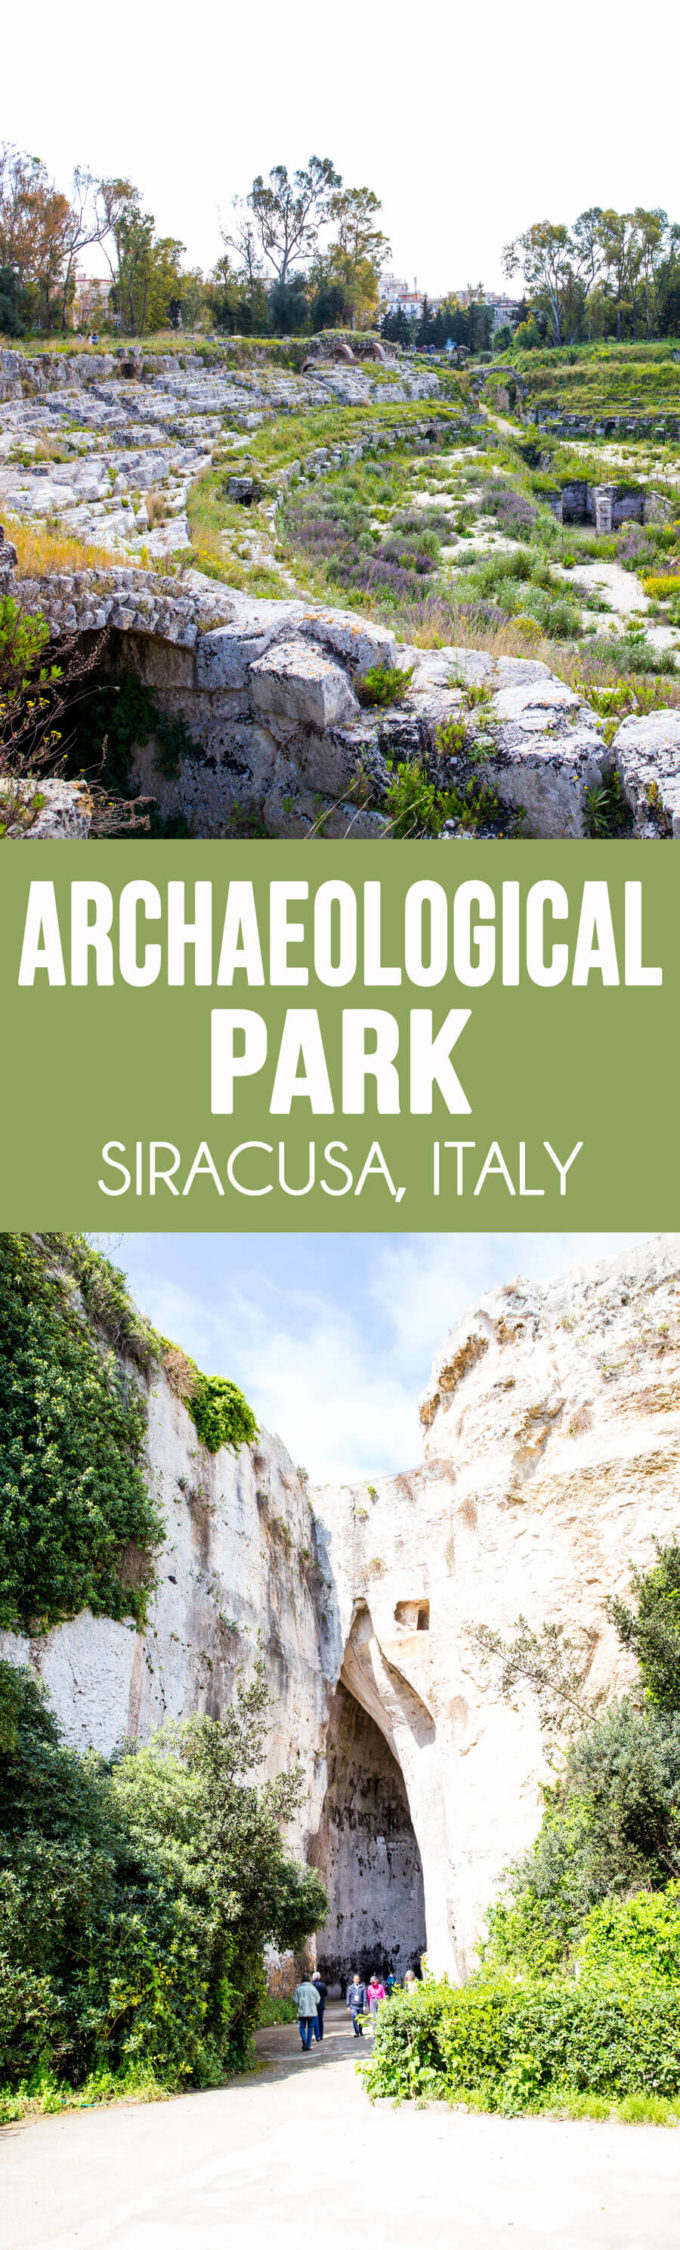 Archaeological park in Siracusa Italy, greek and roman amphitheaters